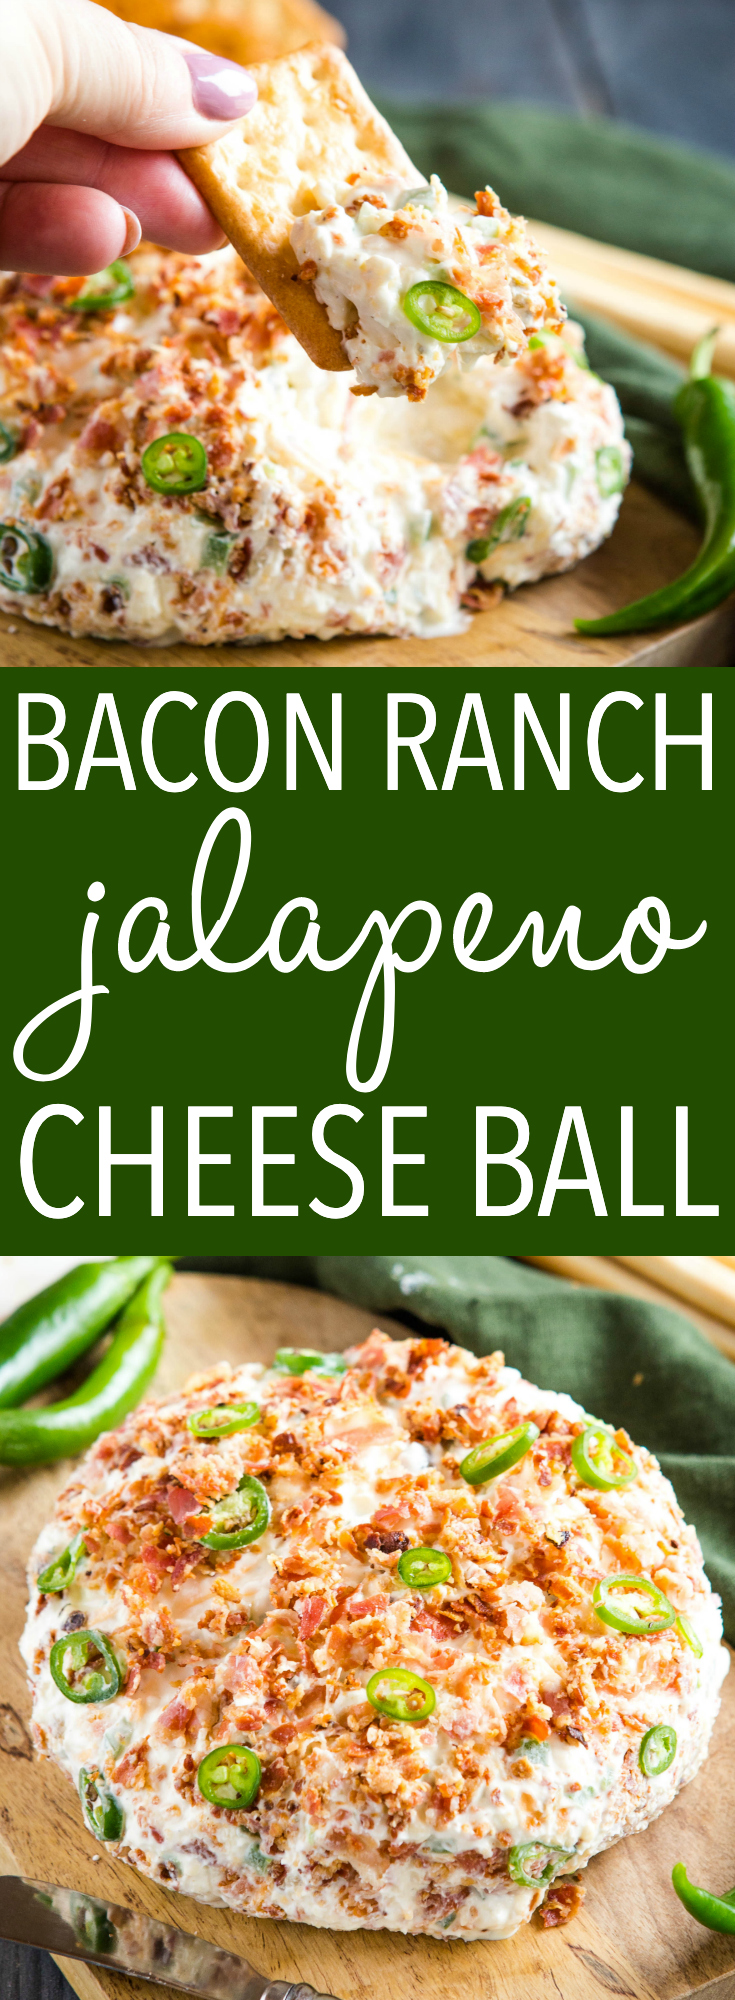 This Bacon Ranch Jalapeño Cheese Ball makes a delicious appetizer for holiday entertaining.  It's easy to make with ranch dip mix, crumbled bacon, jalapeños and cheese! Recipe from thebusybaker.ca! #ranch #cheeseball #jalapeno #bacon #appetizer #newyearseve #gameday via @busybakerblog